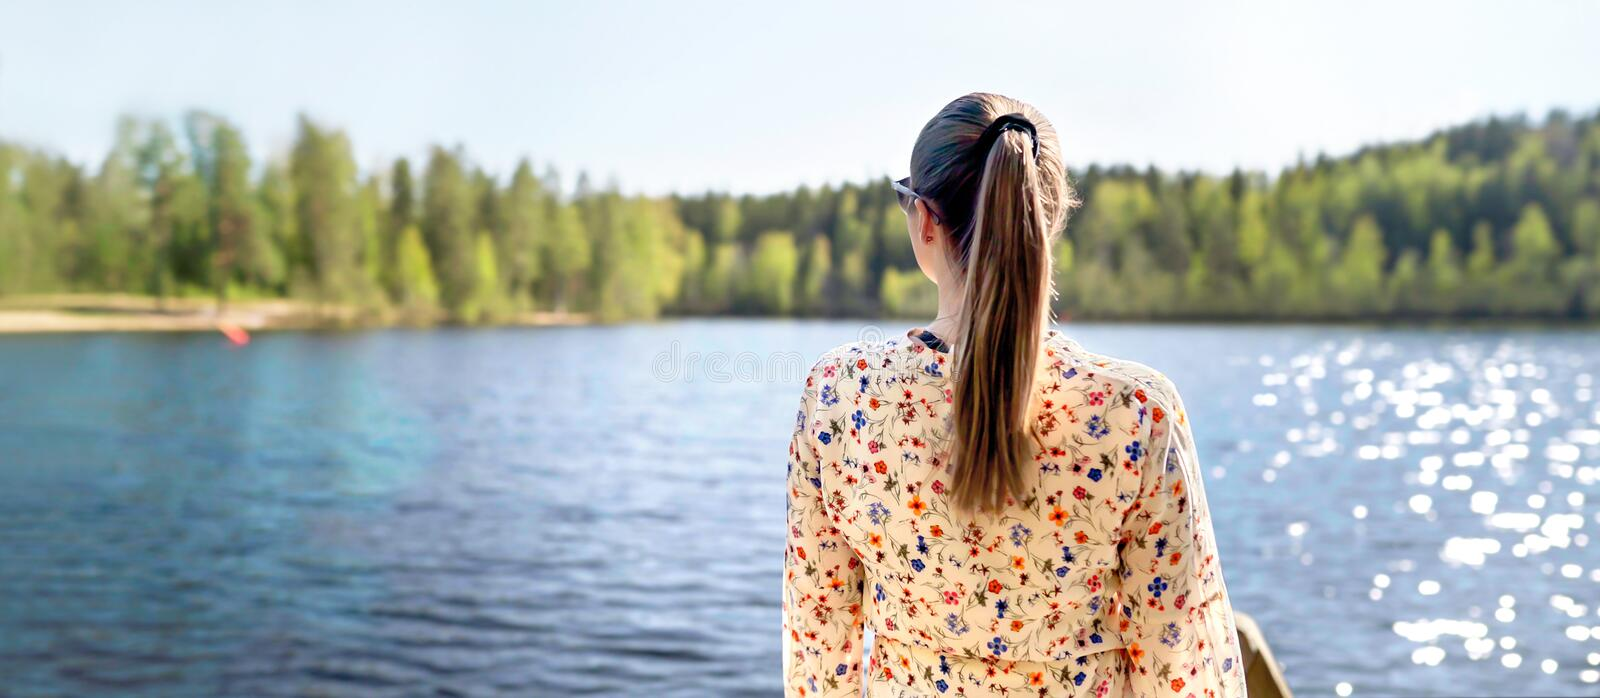 Finnish woman standing and looking at a lake in Finland. Happy person relaxing and enjoying sunny summer vacation or weekend. royalty free stock photos